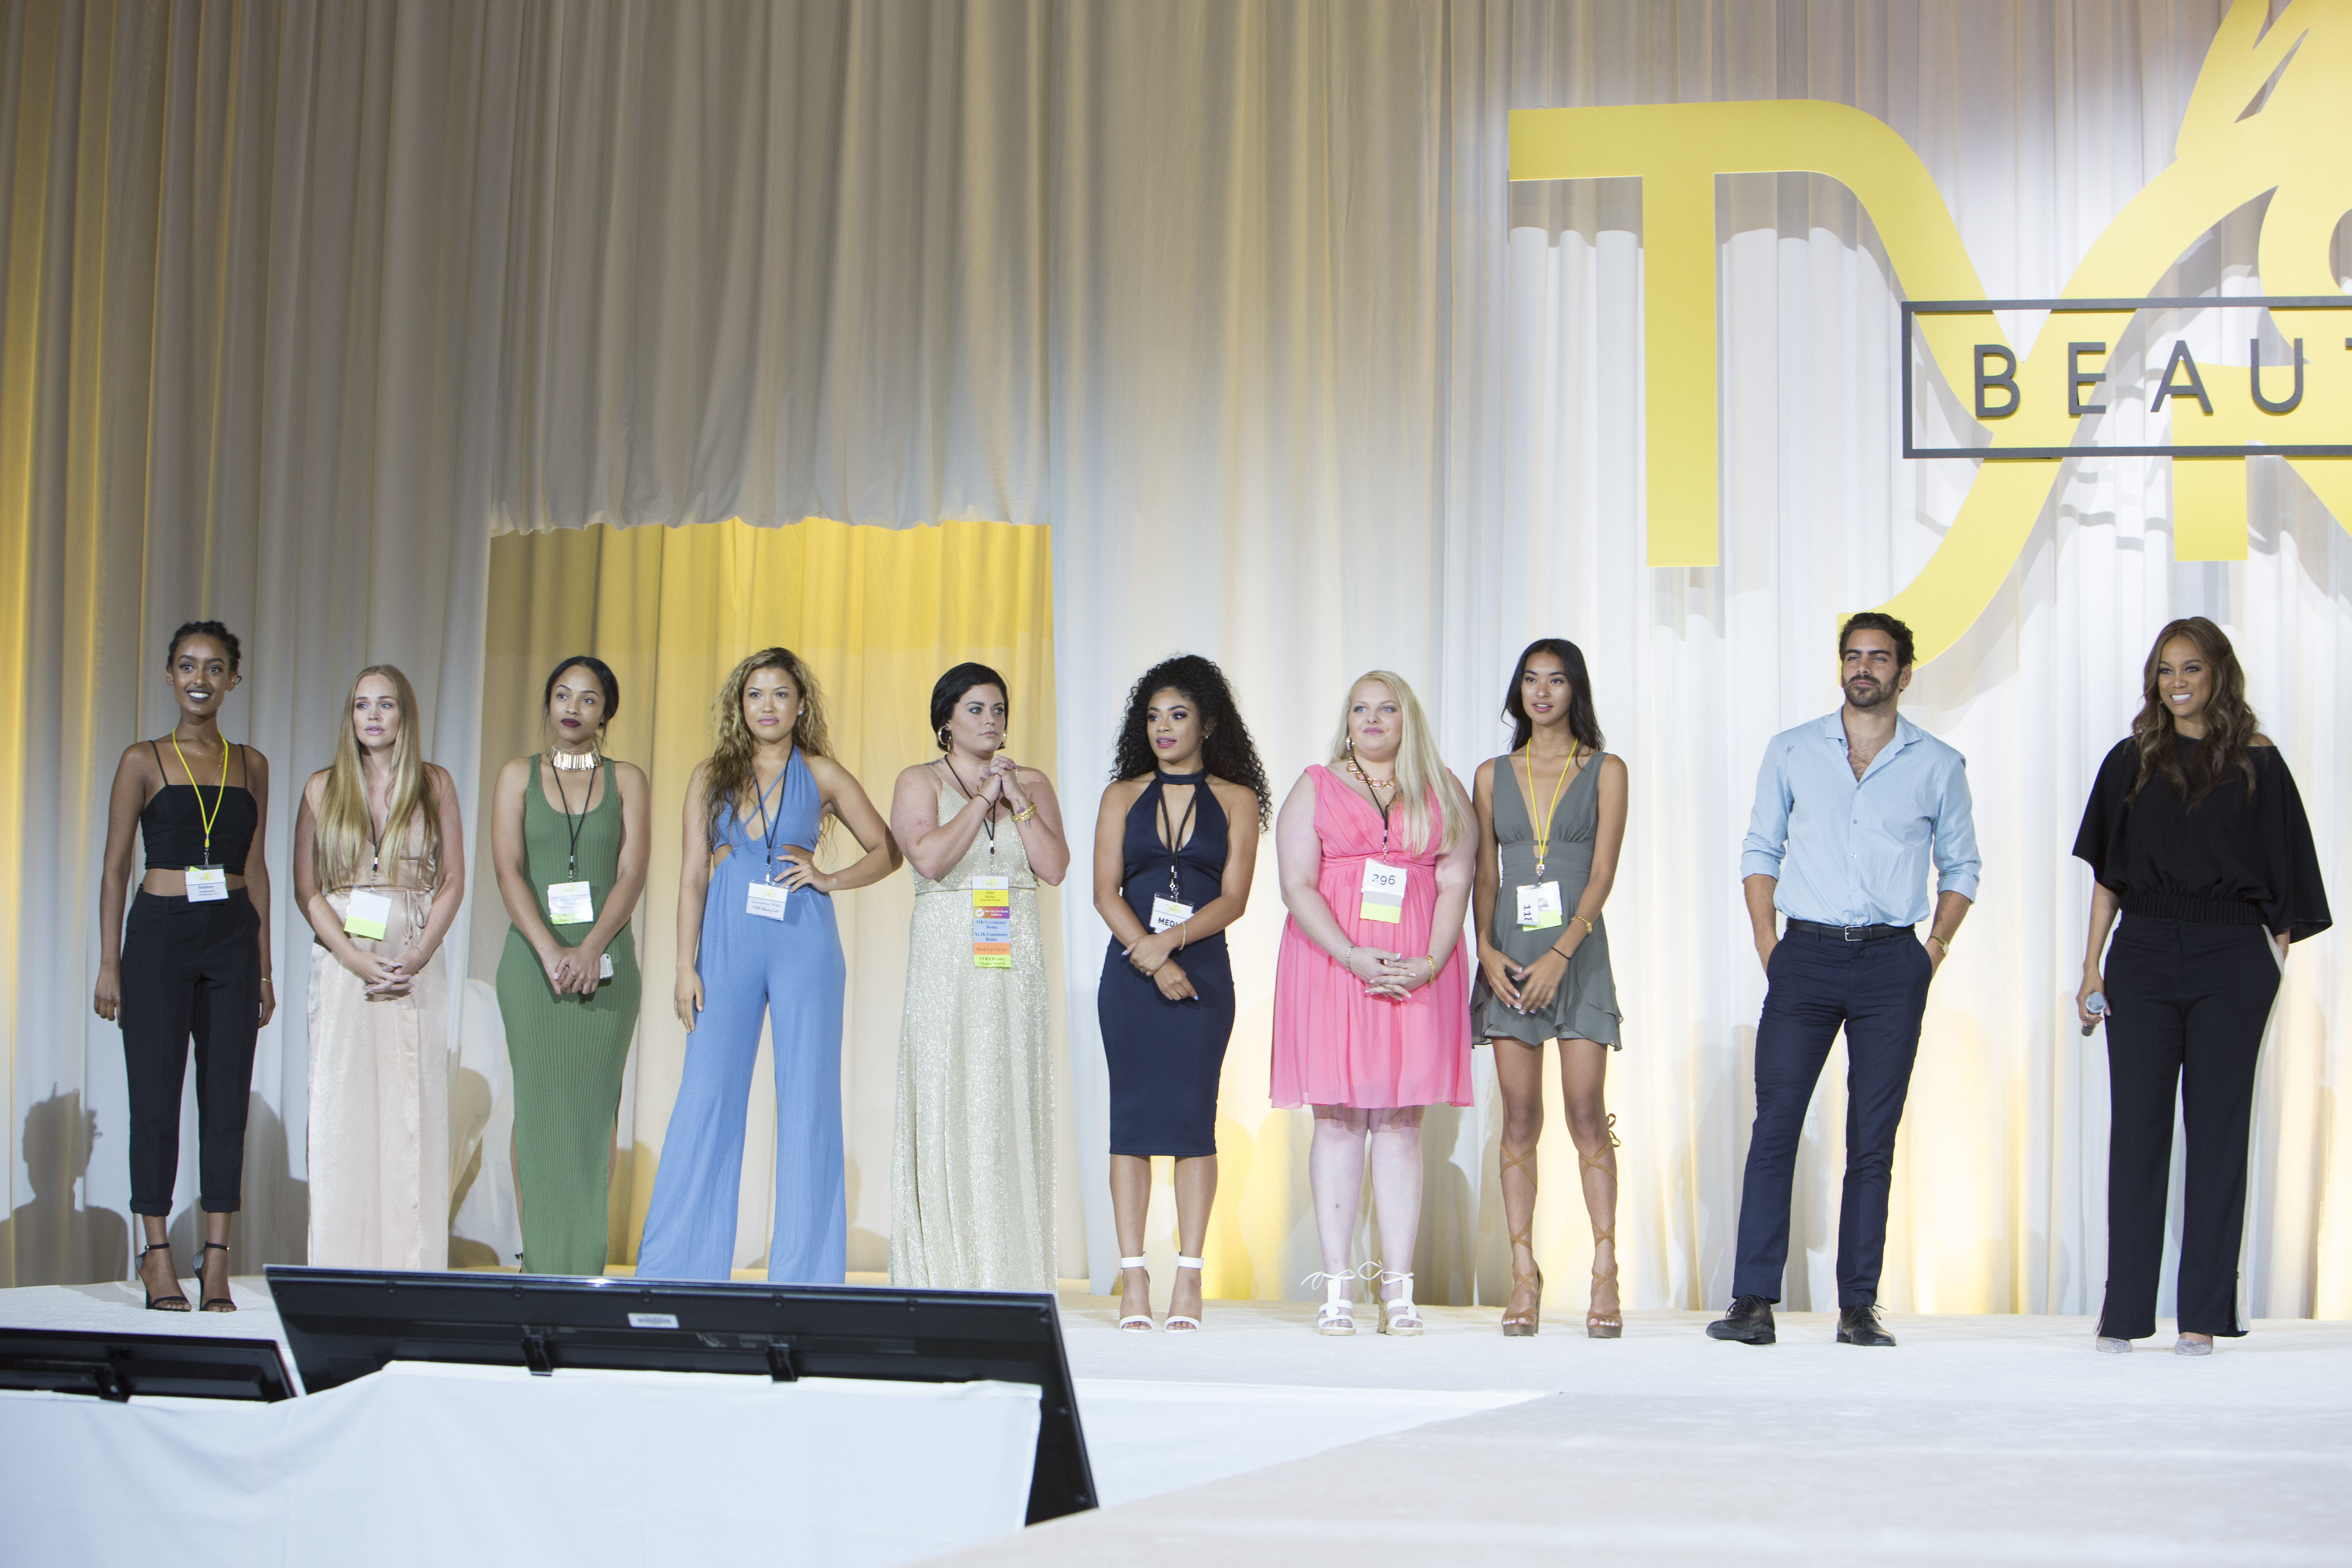 Tyra Banks announces the winners of her brand Tyra Beauty's model search.